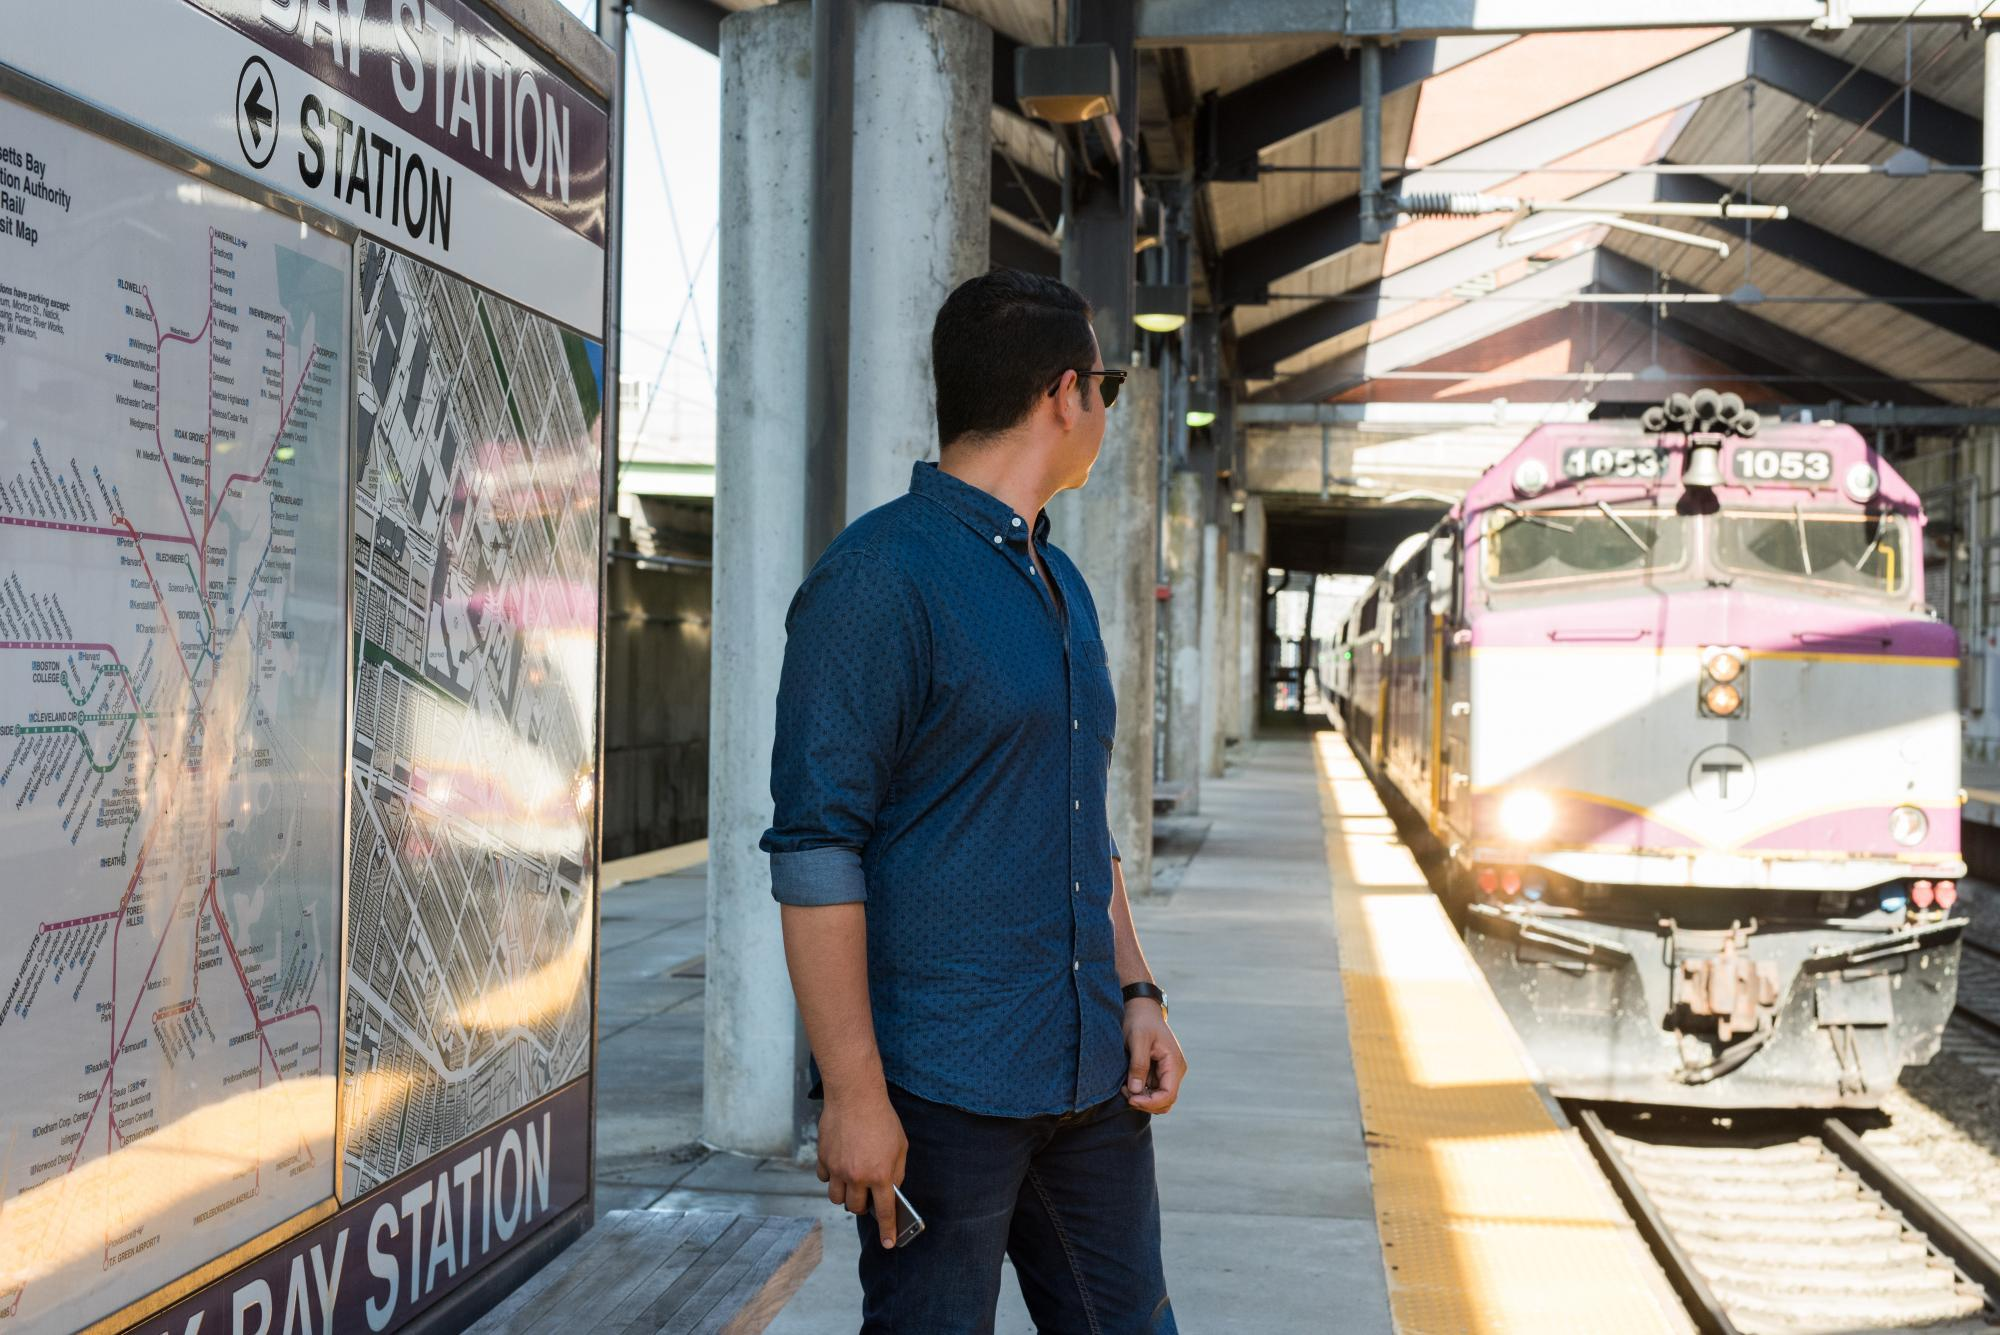 A man stands on the platform at Back Bay as a Commuter Rail train pulls in, awash in sunshine.